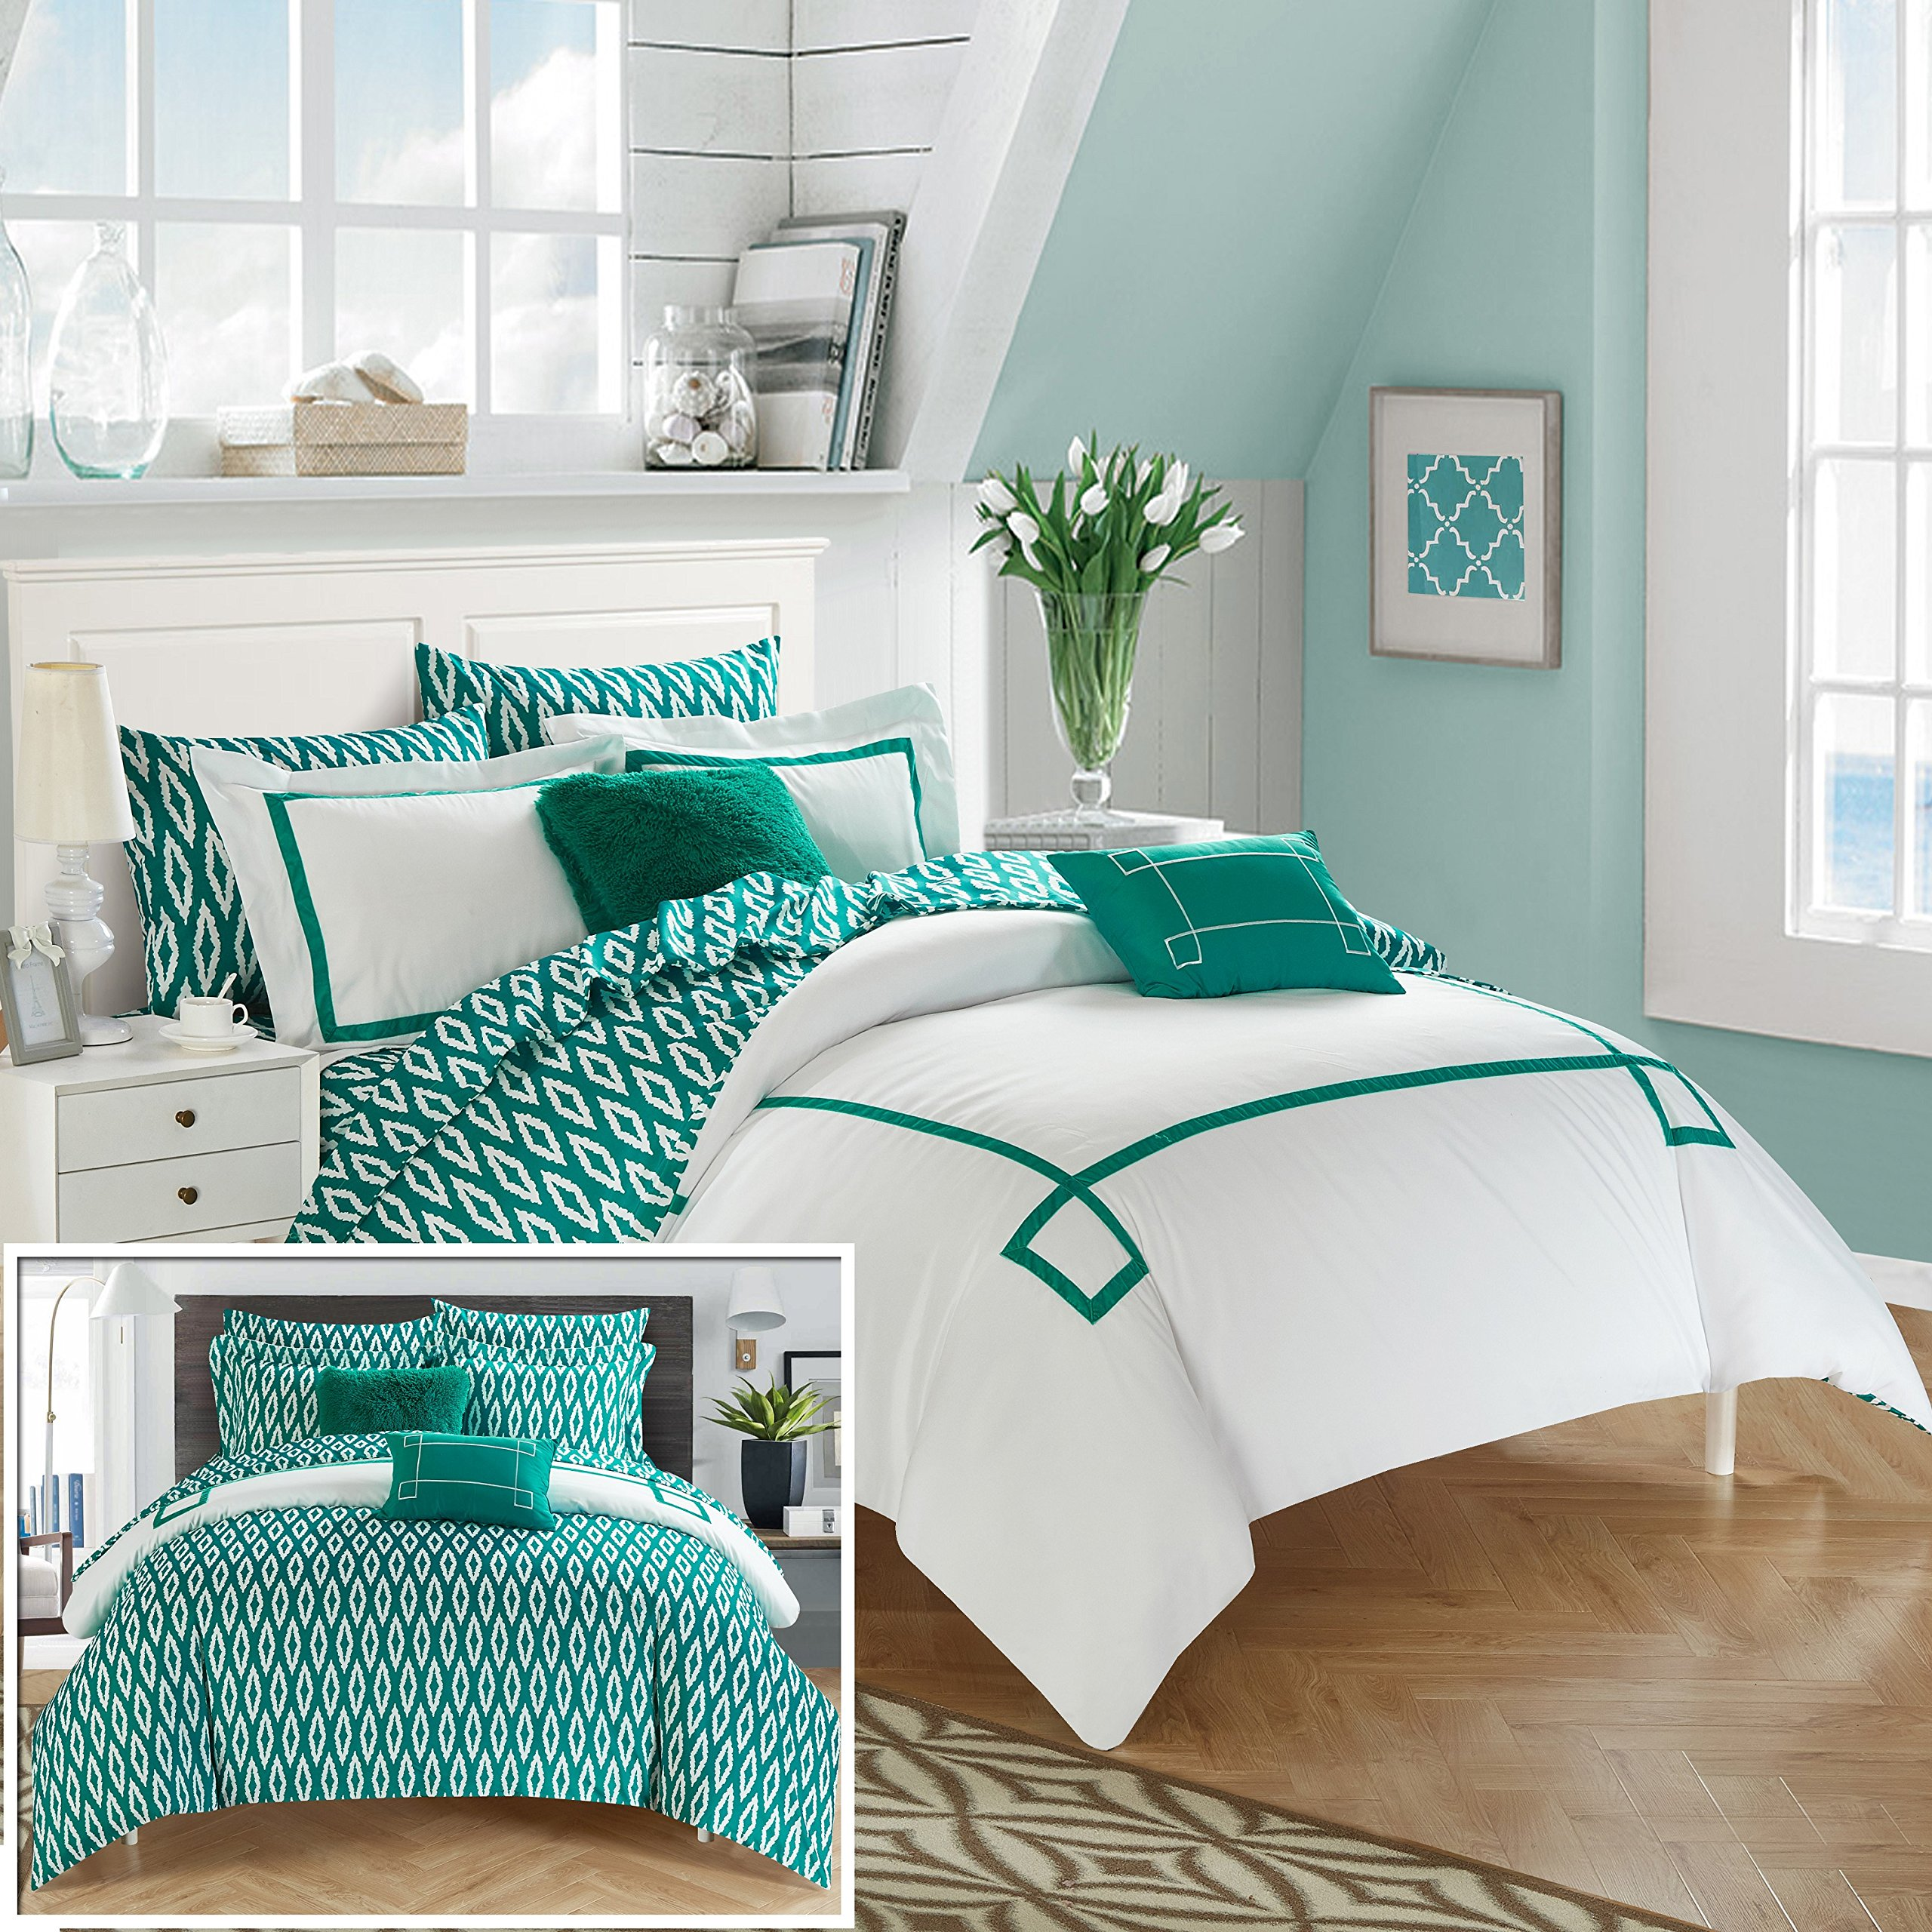 Chic Home CS2946-AN 9 Piece Trace Contemporary Greek Key Embroidered Reversible Bed In A Bag Comforter Set With Sheet Set, Queen, Aqua by Chic Home